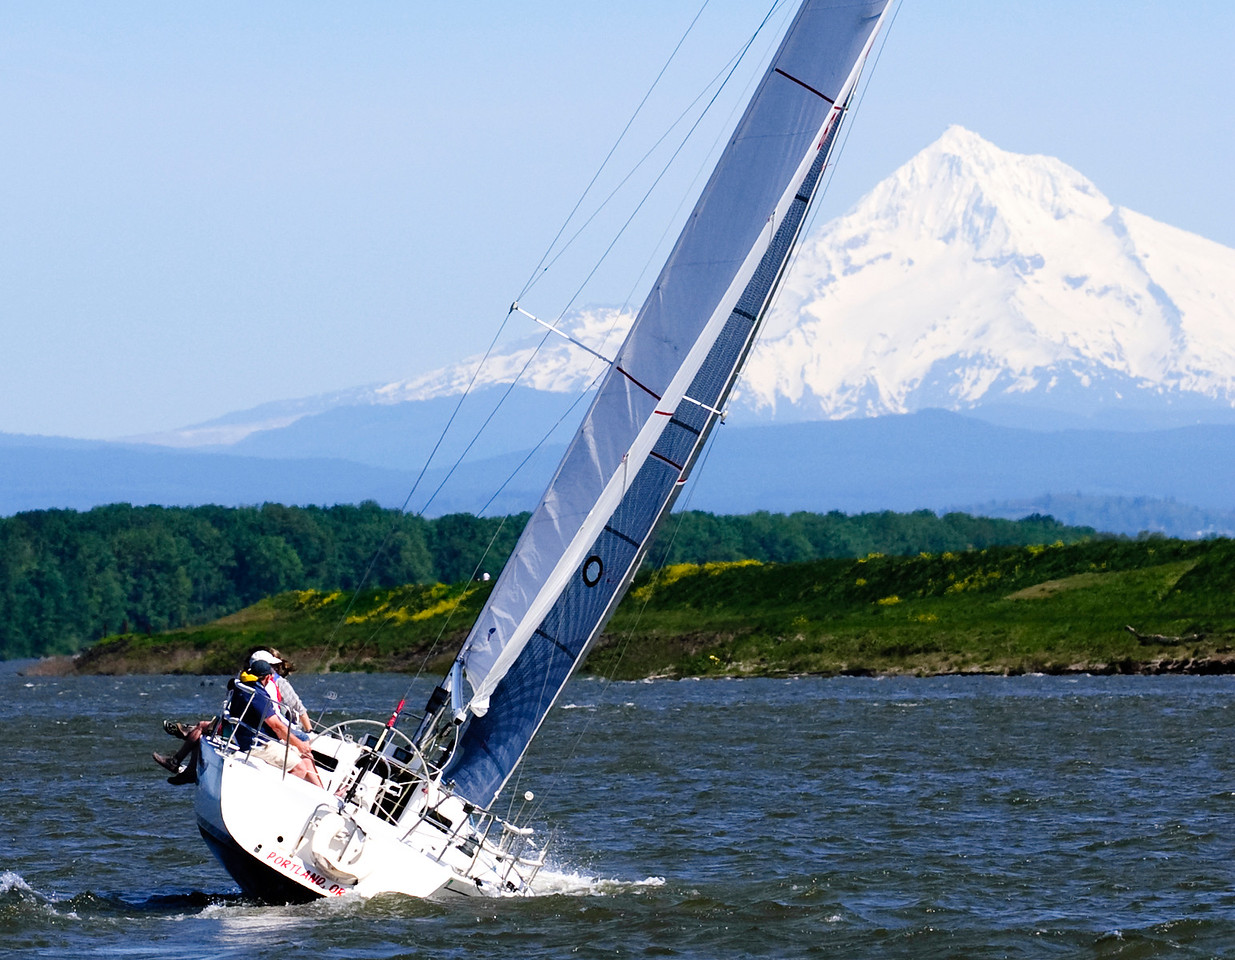 [4.17.16]  Sailing on the Columbia River